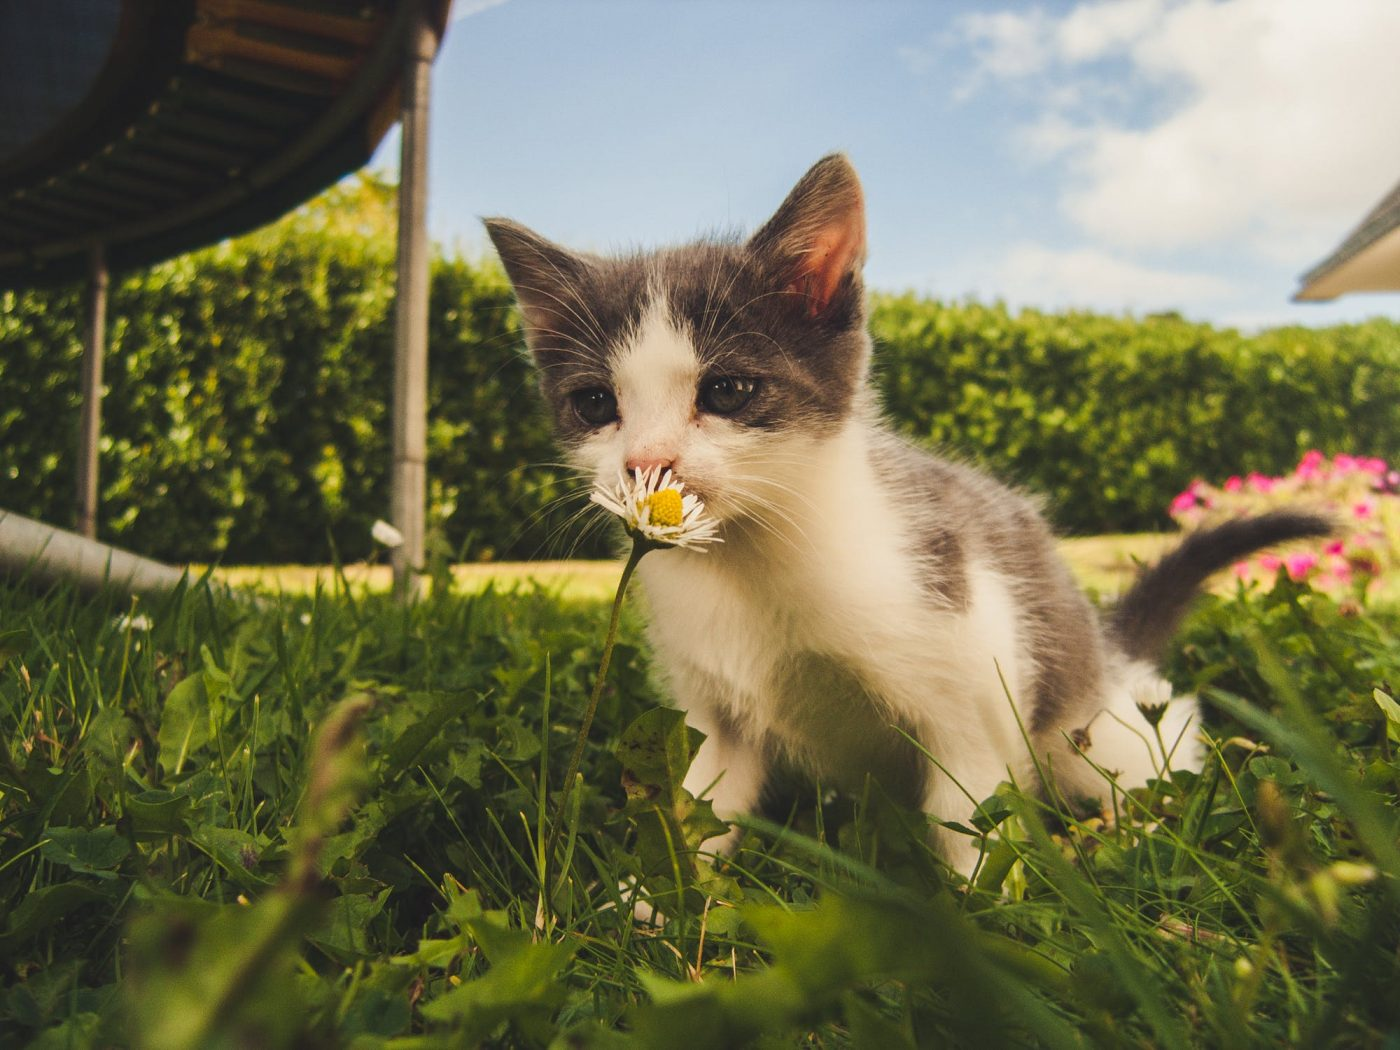 cat sniffing flower in grass